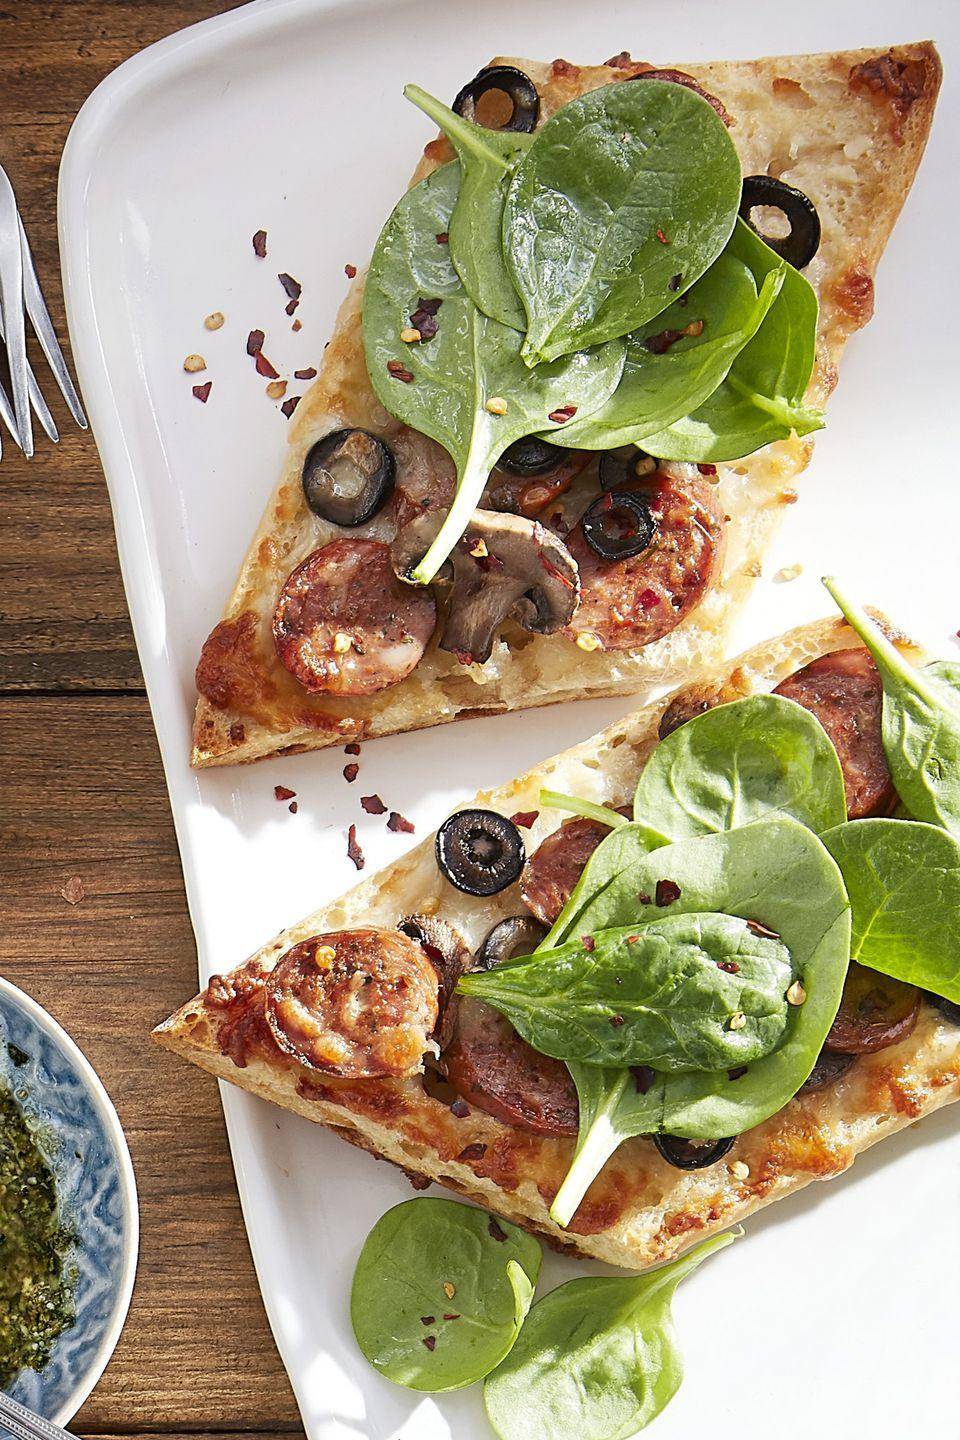 """<p>Chicken sausage, olives, and spinach are about to become your new favorite pizza toppings.</p><p><strong><a href=""""https://www.countryliving.com/food-drinks/recipes/a44232/sausage-mushroom-black-olive-white-pizzas-recipe/"""" rel=""""nofollow noopener"""" target=""""_blank"""" data-ylk=""""slk:Get the recipe"""" class=""""link rapid-noclick-resp"""">Get the recipe</a>.</strong> </p>"""